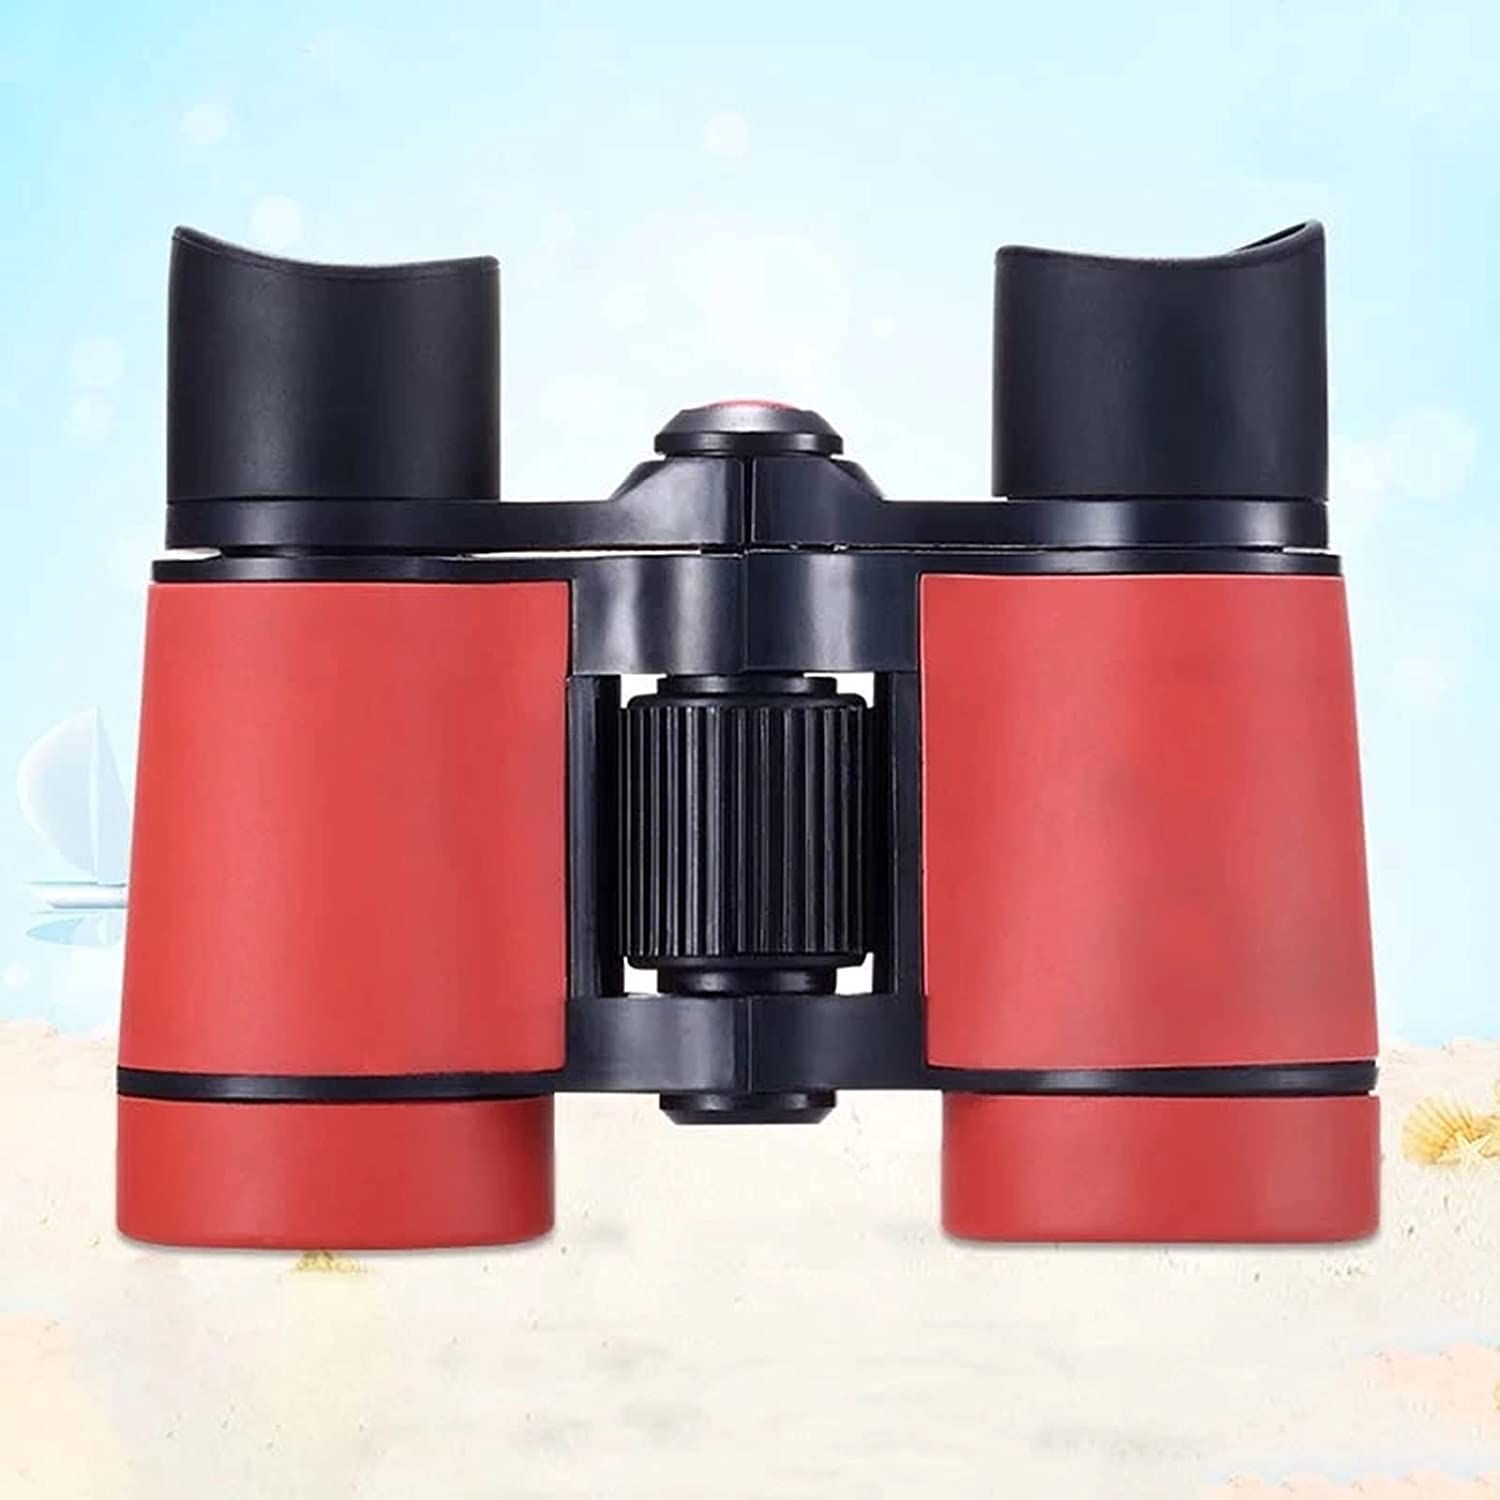 Teerwere Binoculars All items free shipping Children's Toys HD Baby and Male Max 50% OFF Chil Female